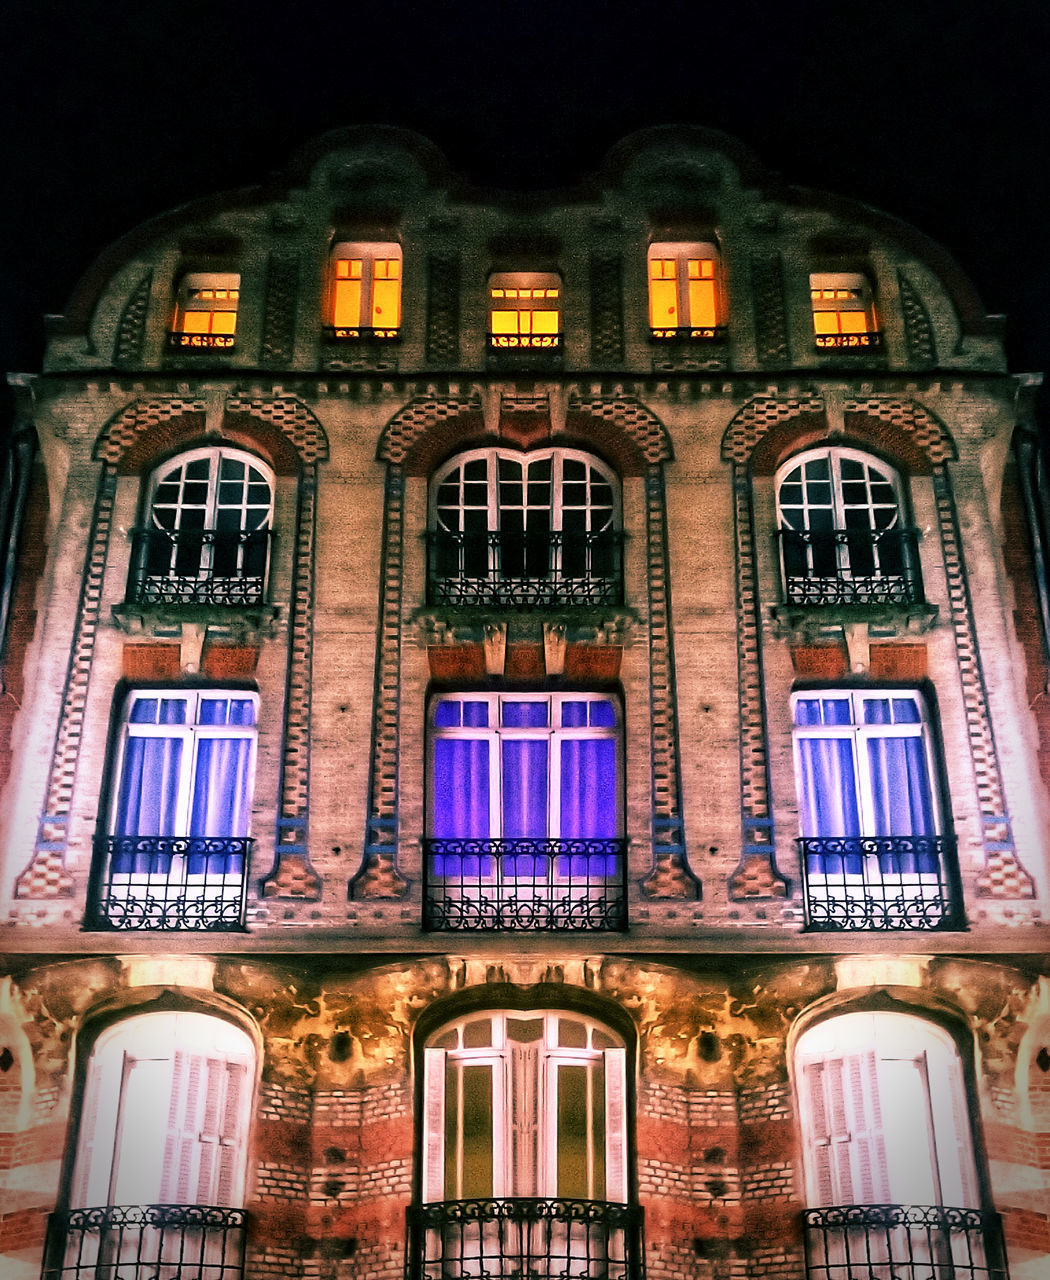 building exterior, architecture, illuminated, night, built structure, window, no people, low angle view, building, lighting equipment, history, the past, communication, residential district, glass - material, outdoors, pattern, city, facade, glowing, nightlife